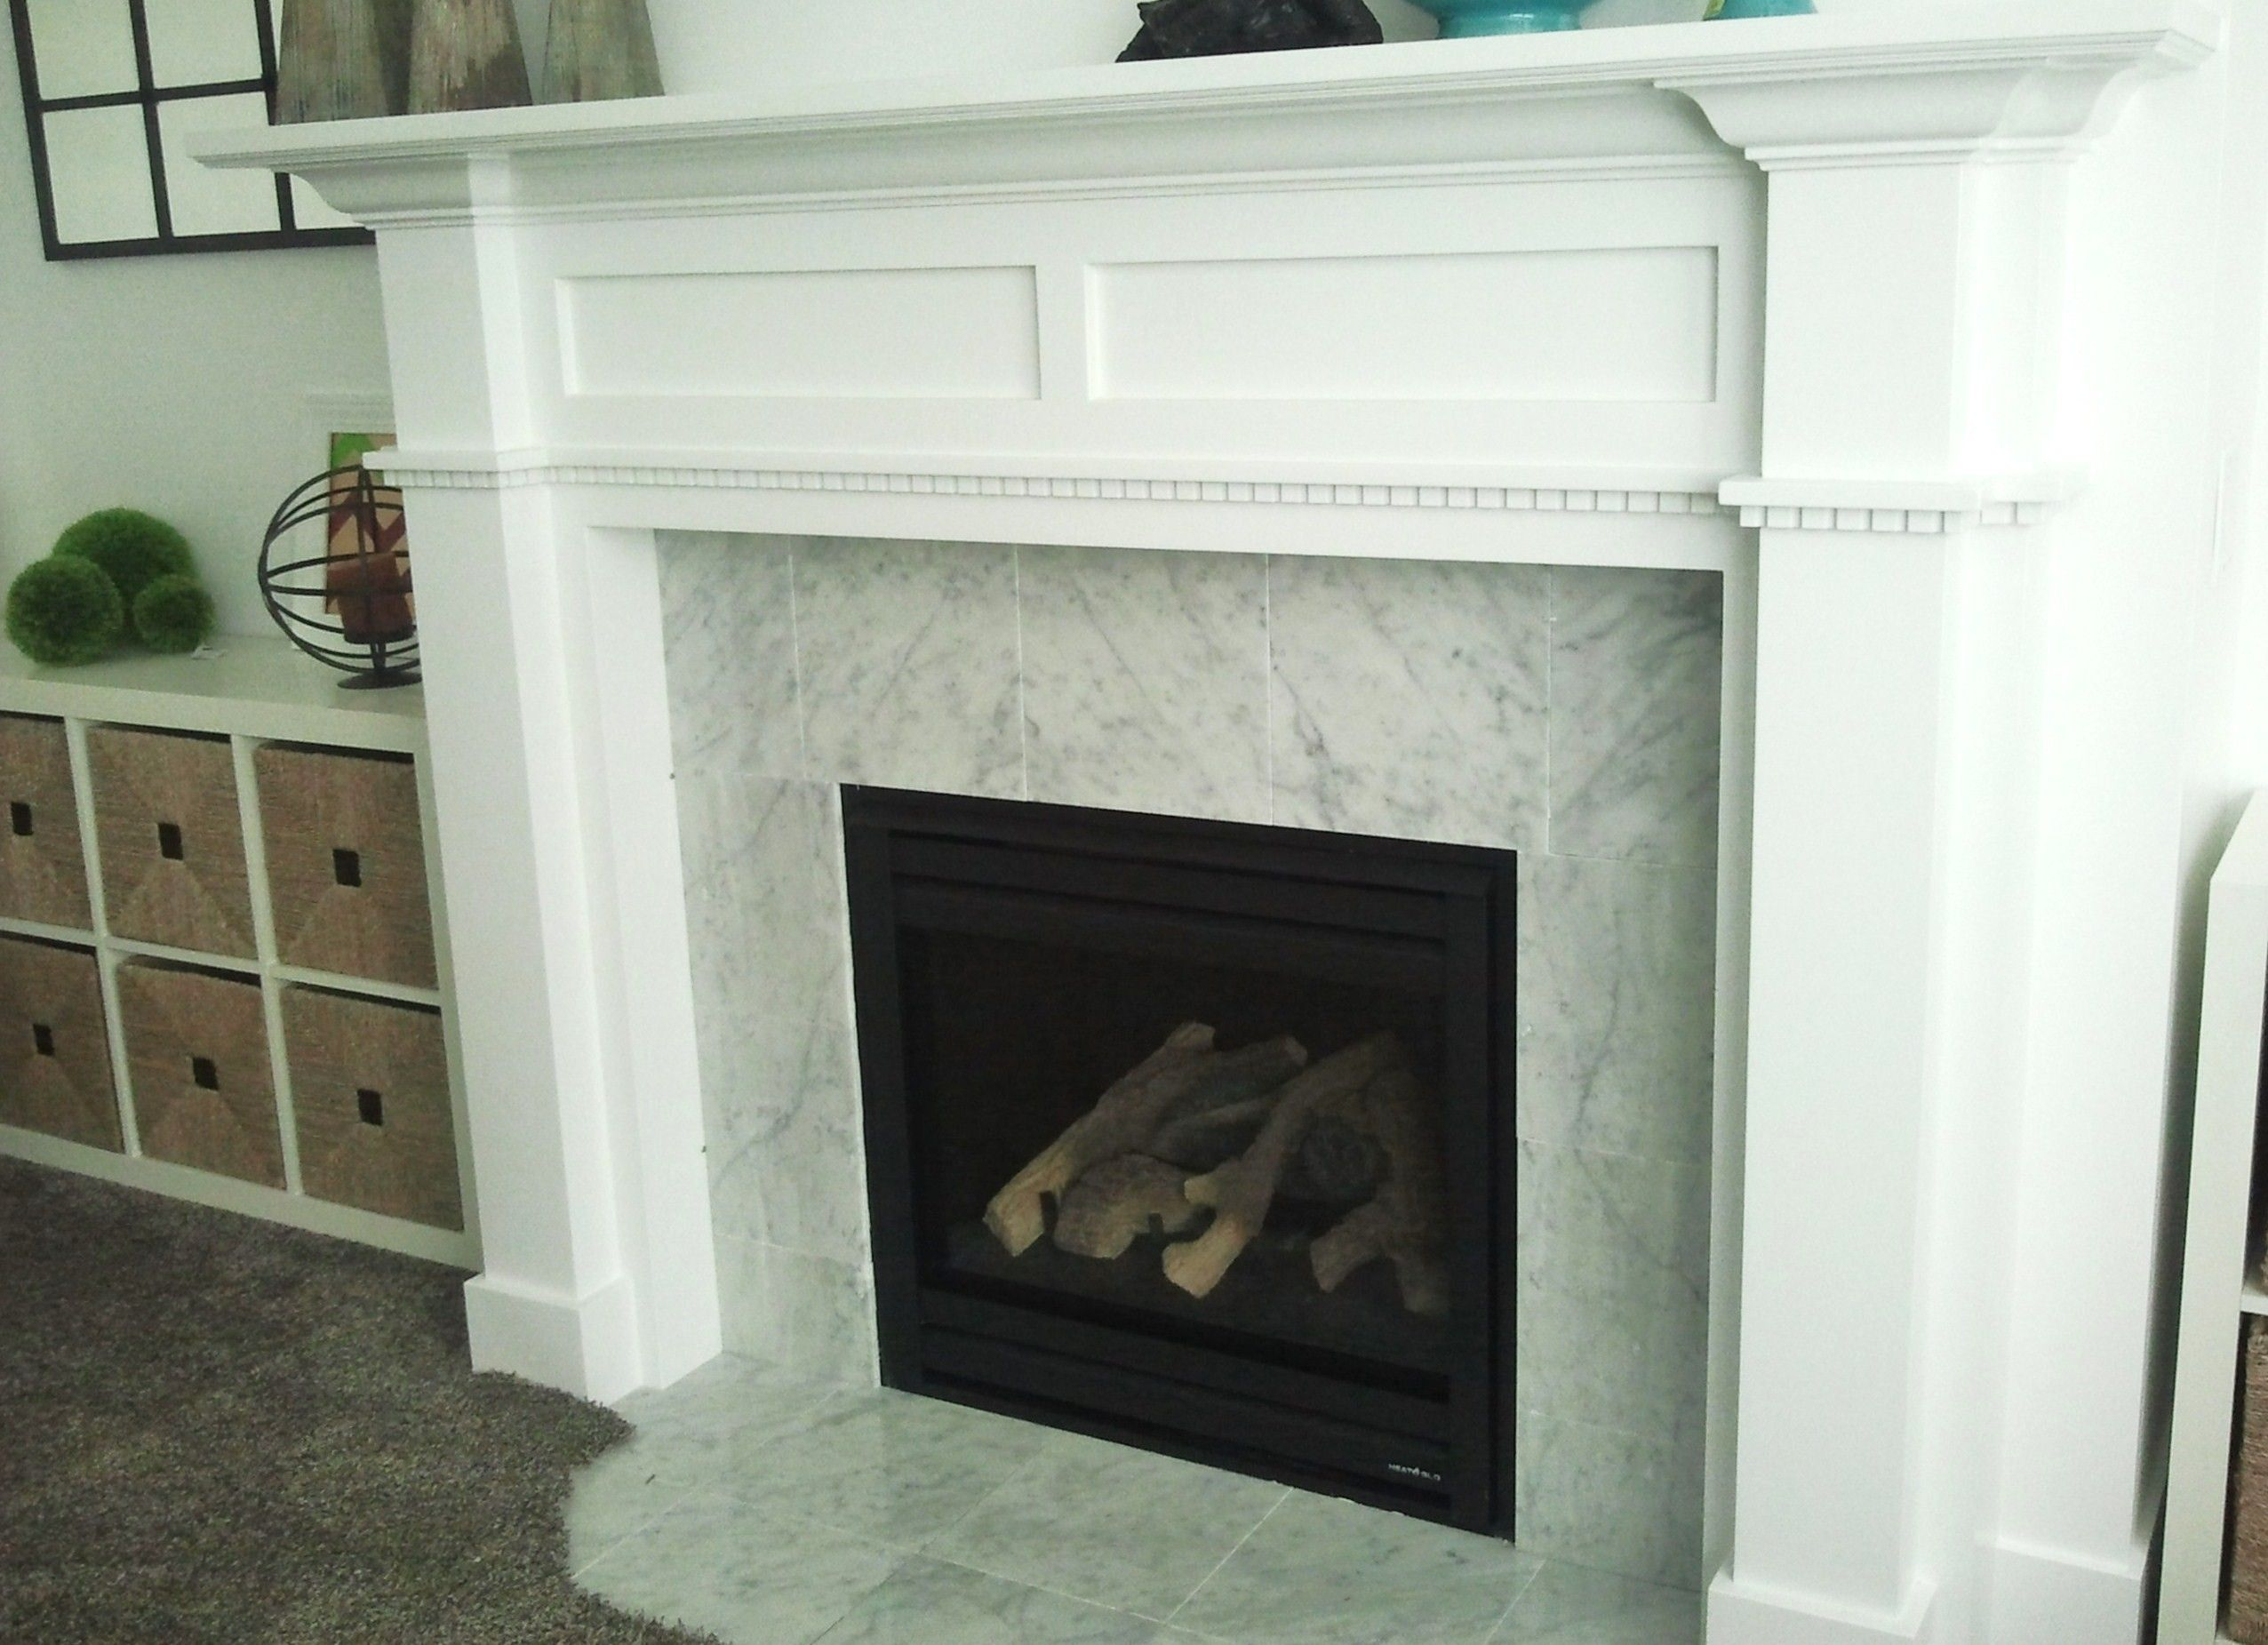 Modern Fireplace Design With Green Marble Surround And White